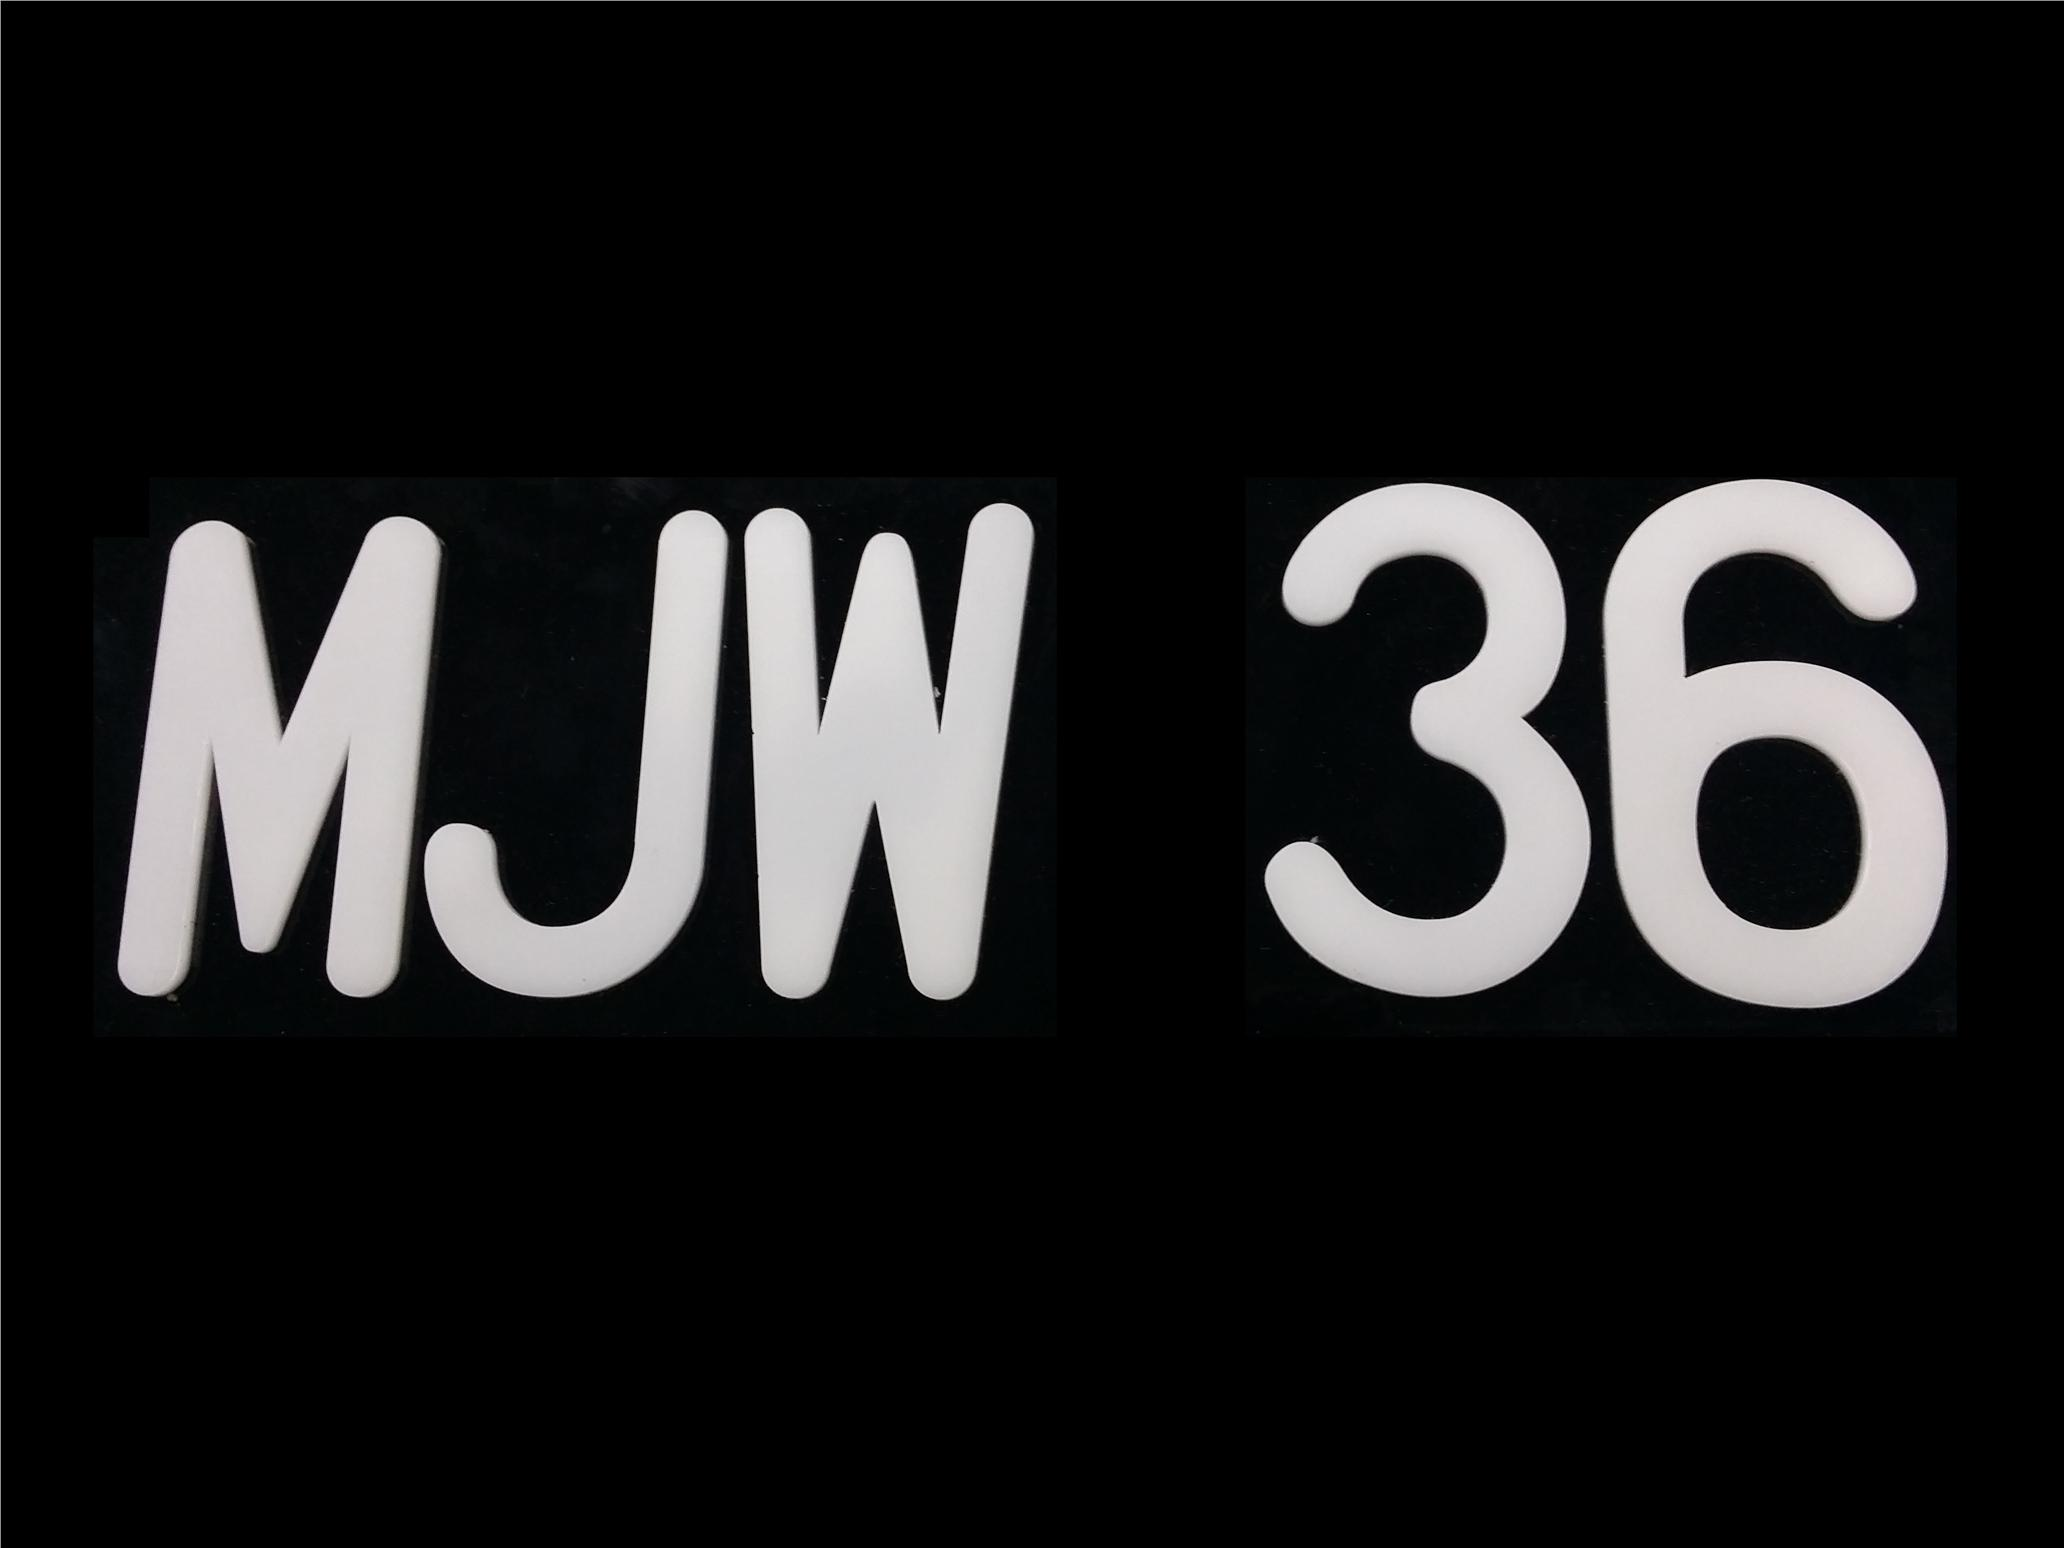 MJW FONT WHITE ACRYLIC CAR NUMBER PLATE SET 2 - 7 ALPHABET